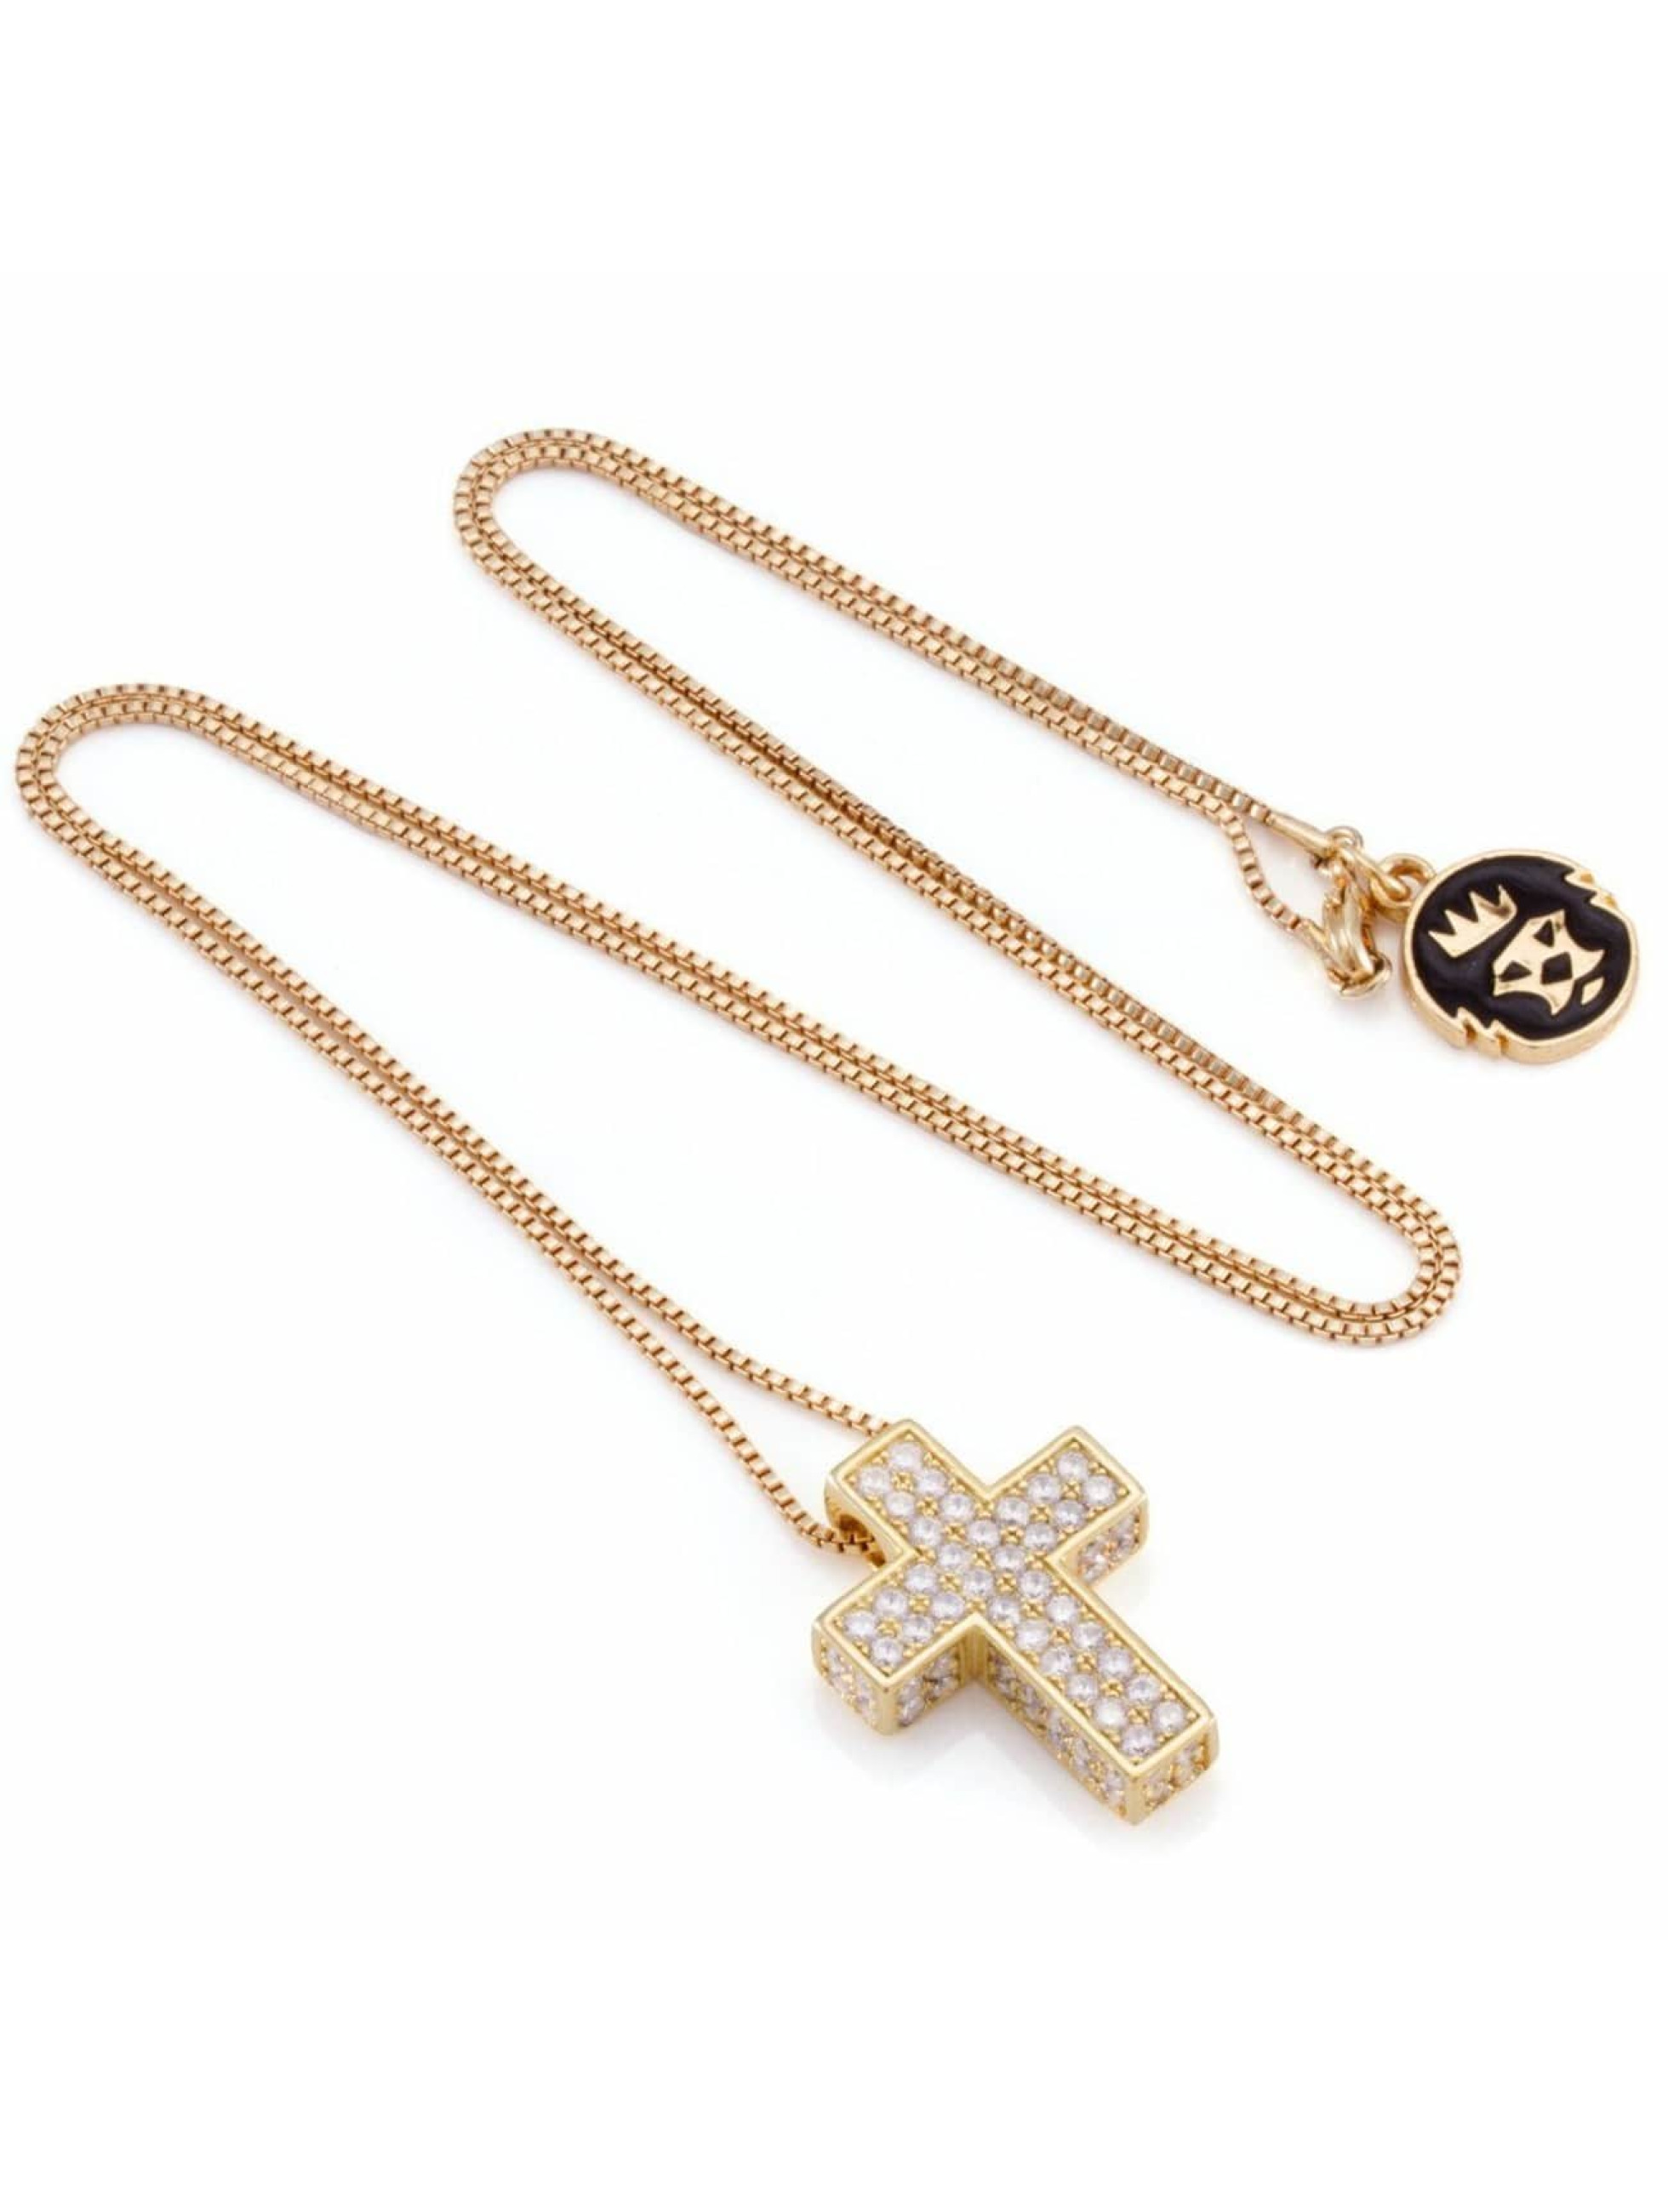 KING ICE Necklace Gold_Plated CZ 925 Sterling_Silver Dime Cross gold